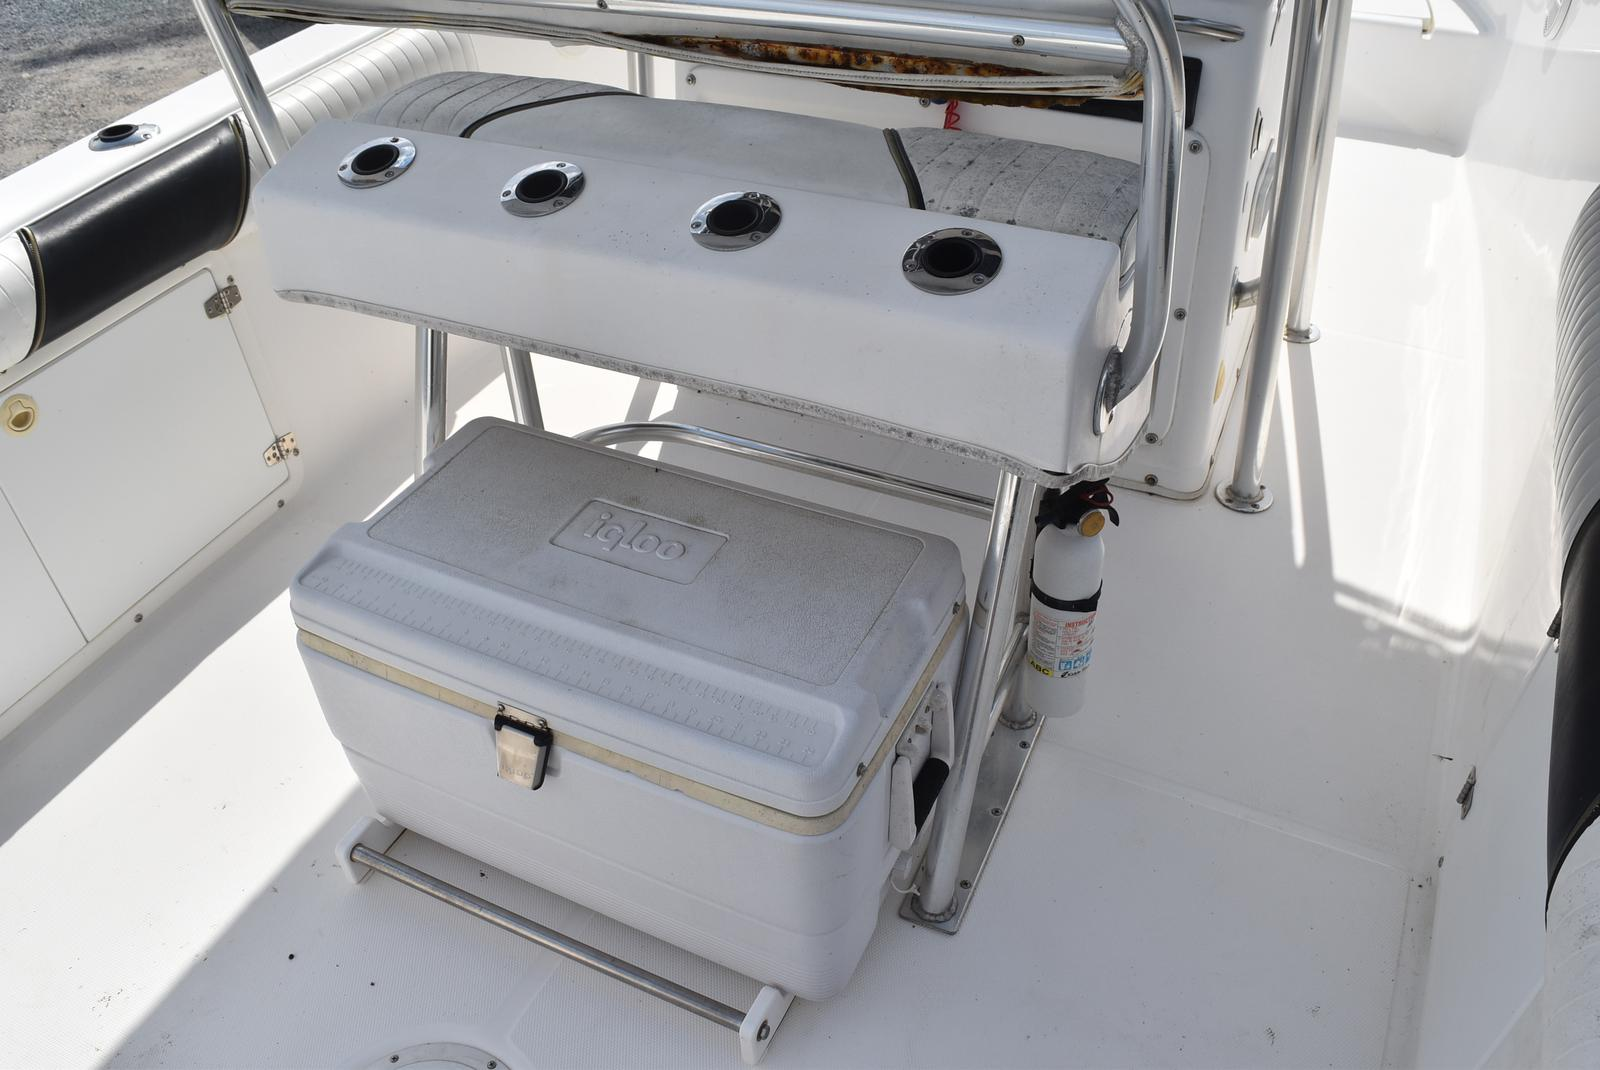 1999 Century boat for sale, model of the boat is 2600 CC & Image # 8 of 18